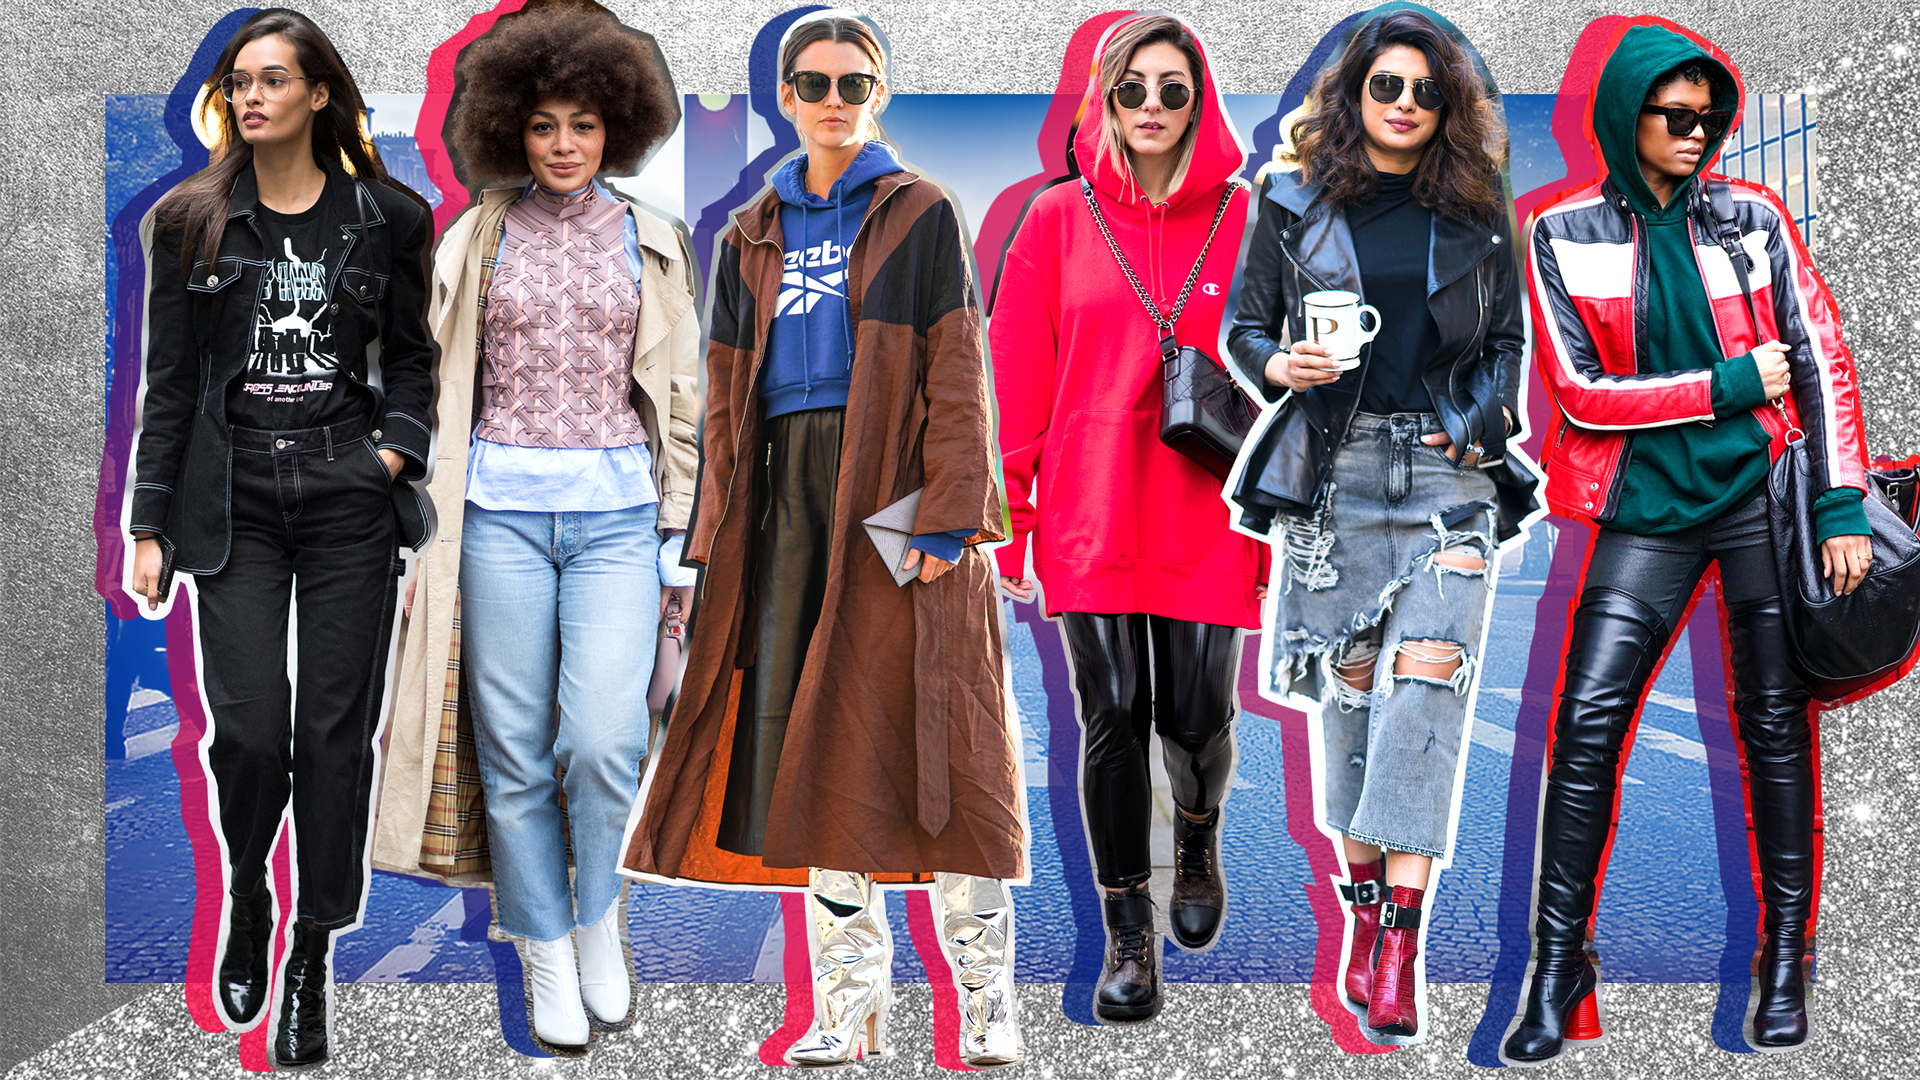 STYLECASTER | Street Style Guide to Tomboy Fashion